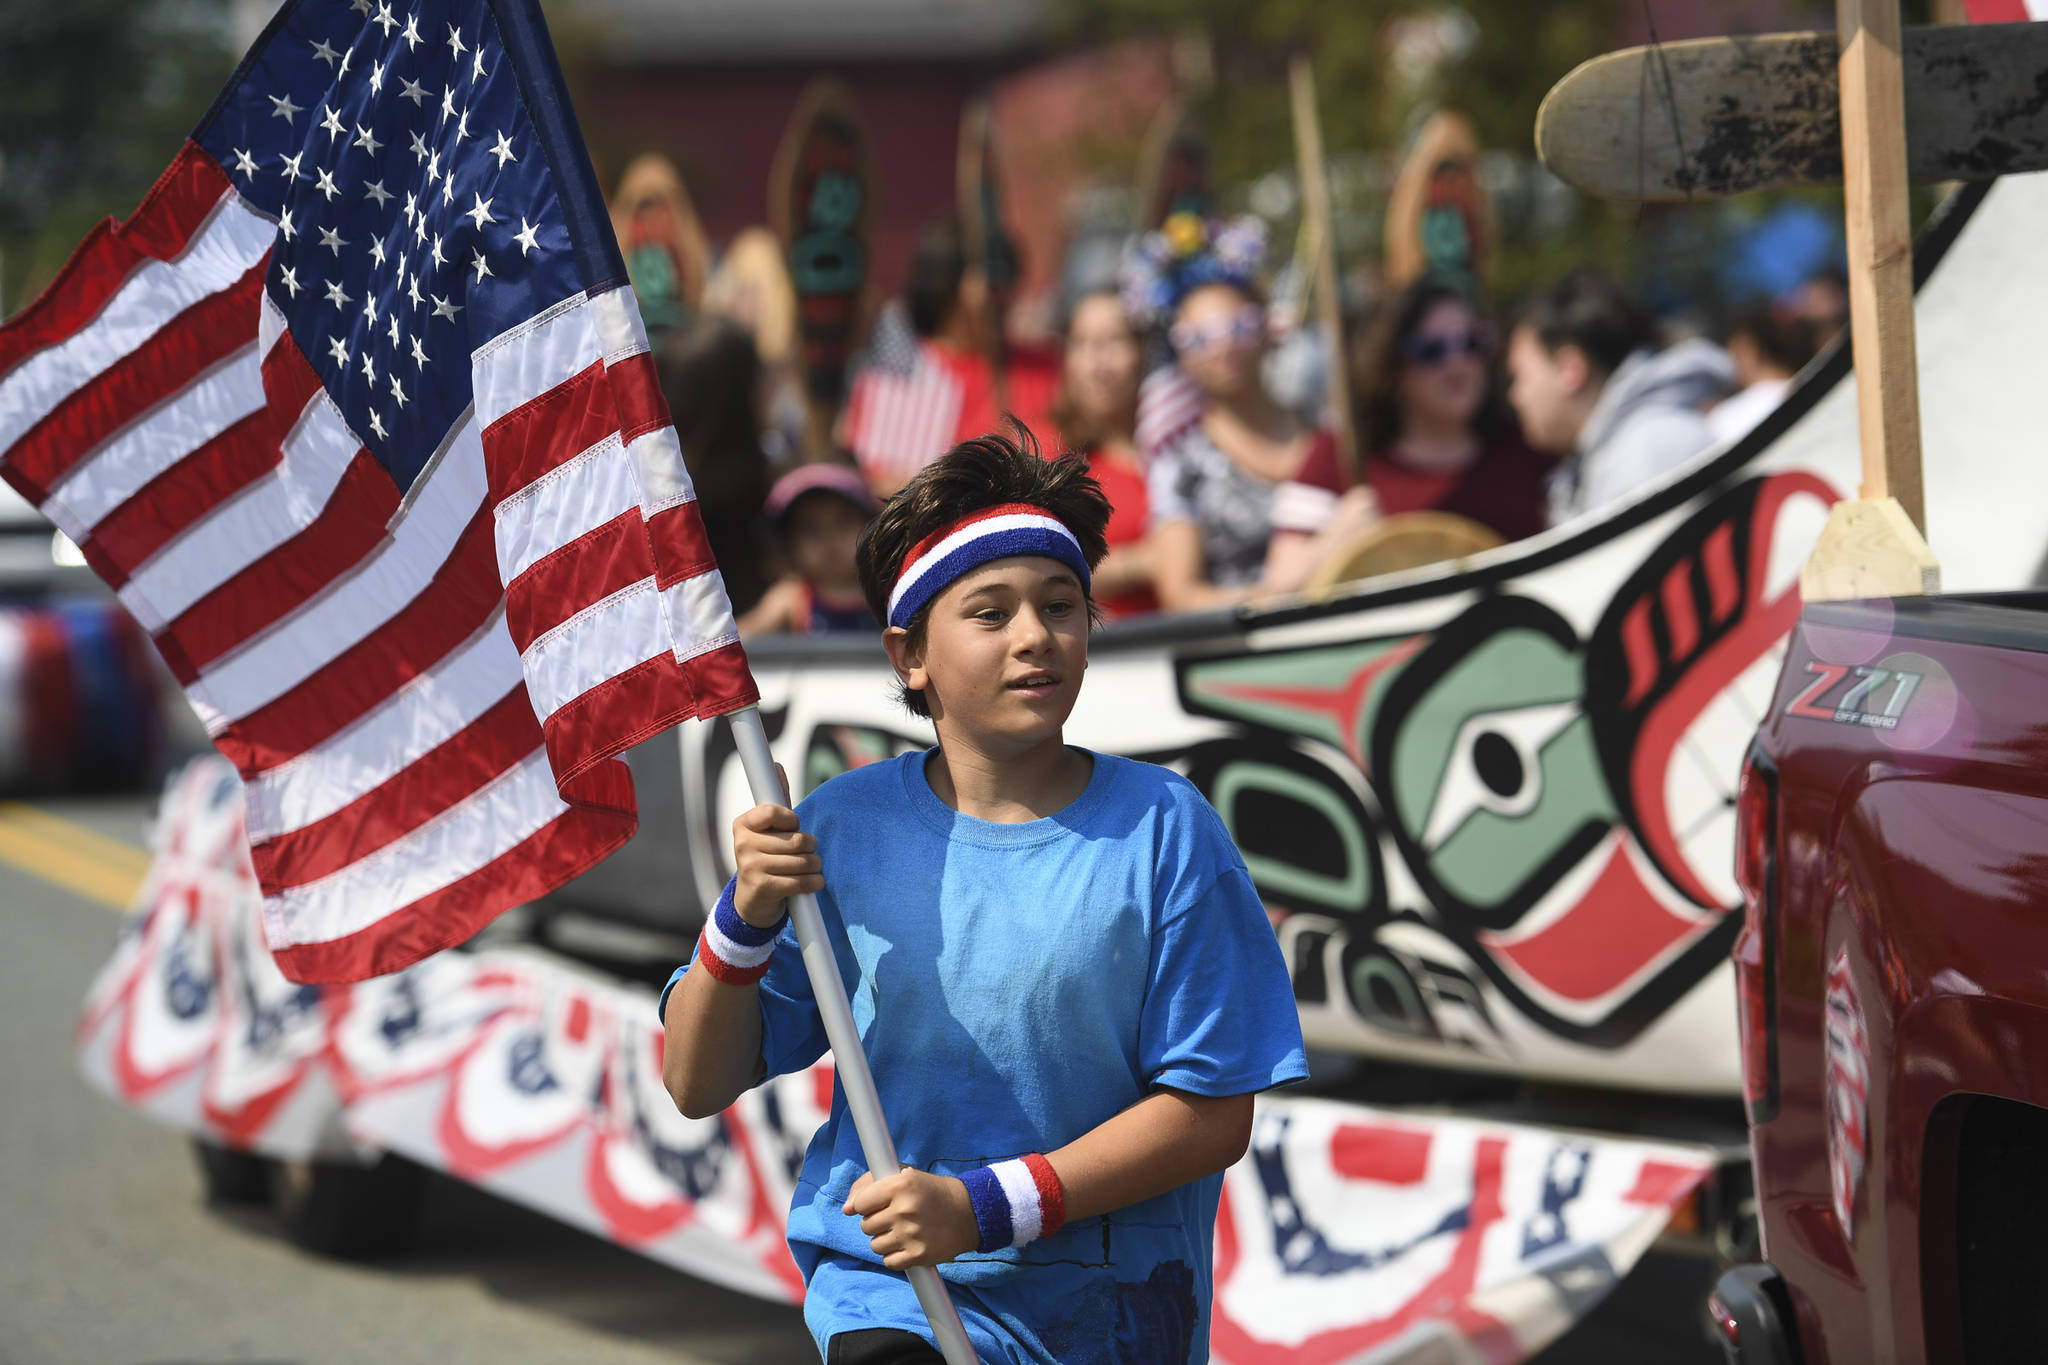 Douglas Fourth of July Parade on Thursday, July 4, 2019. (Michael Penn | Juneau Empire)